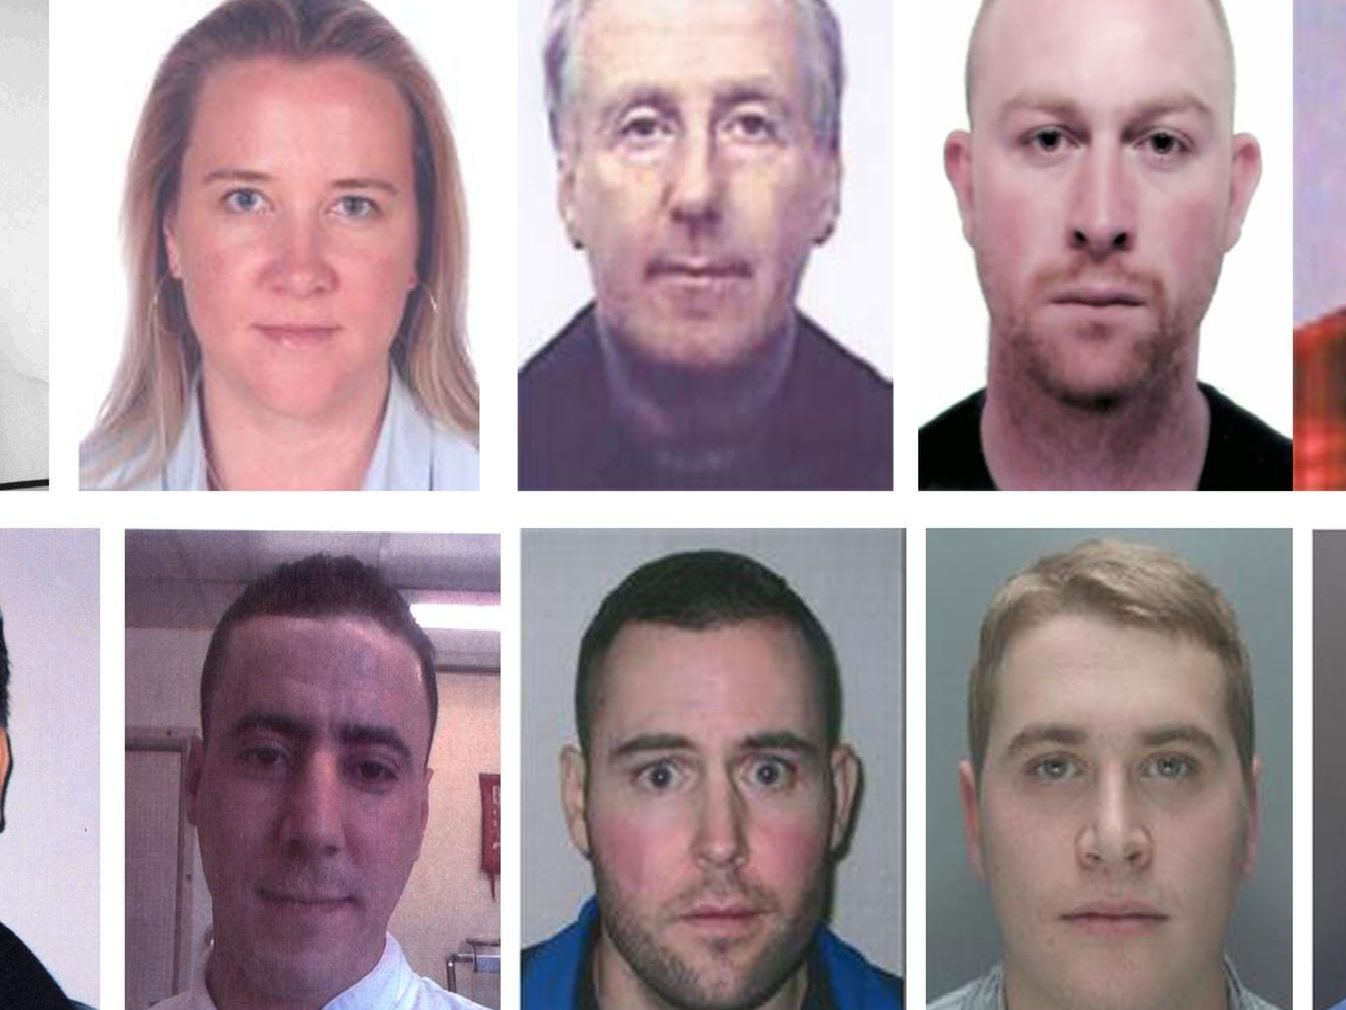 The 11 fugitives still wanted by police